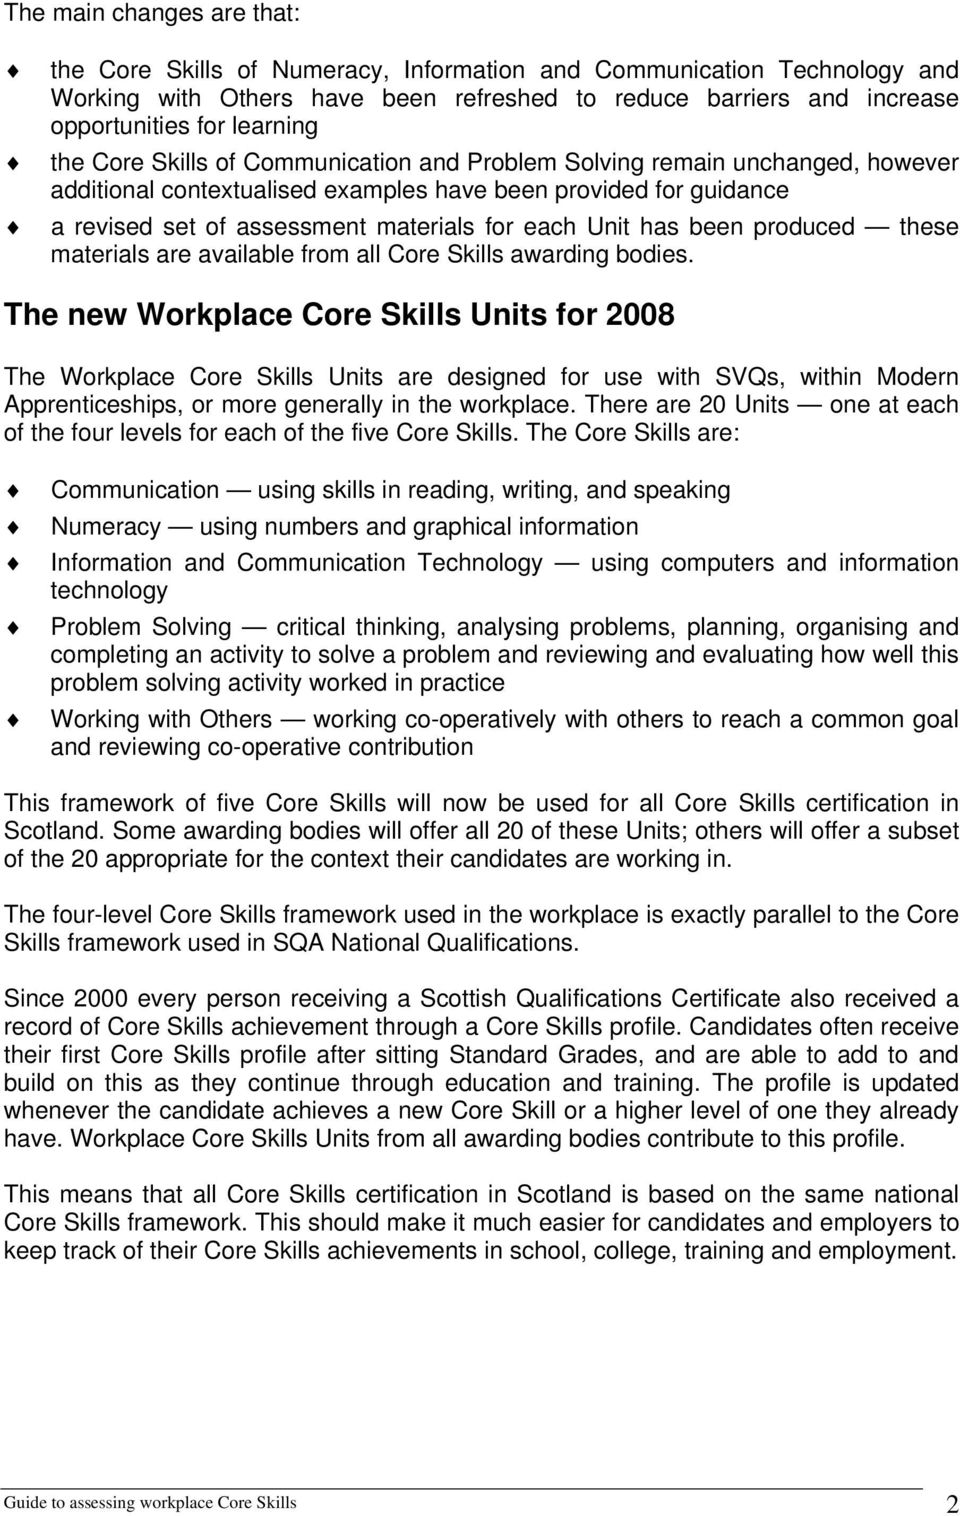 has been produced these materials are available from all Core Skills awarding bodies.